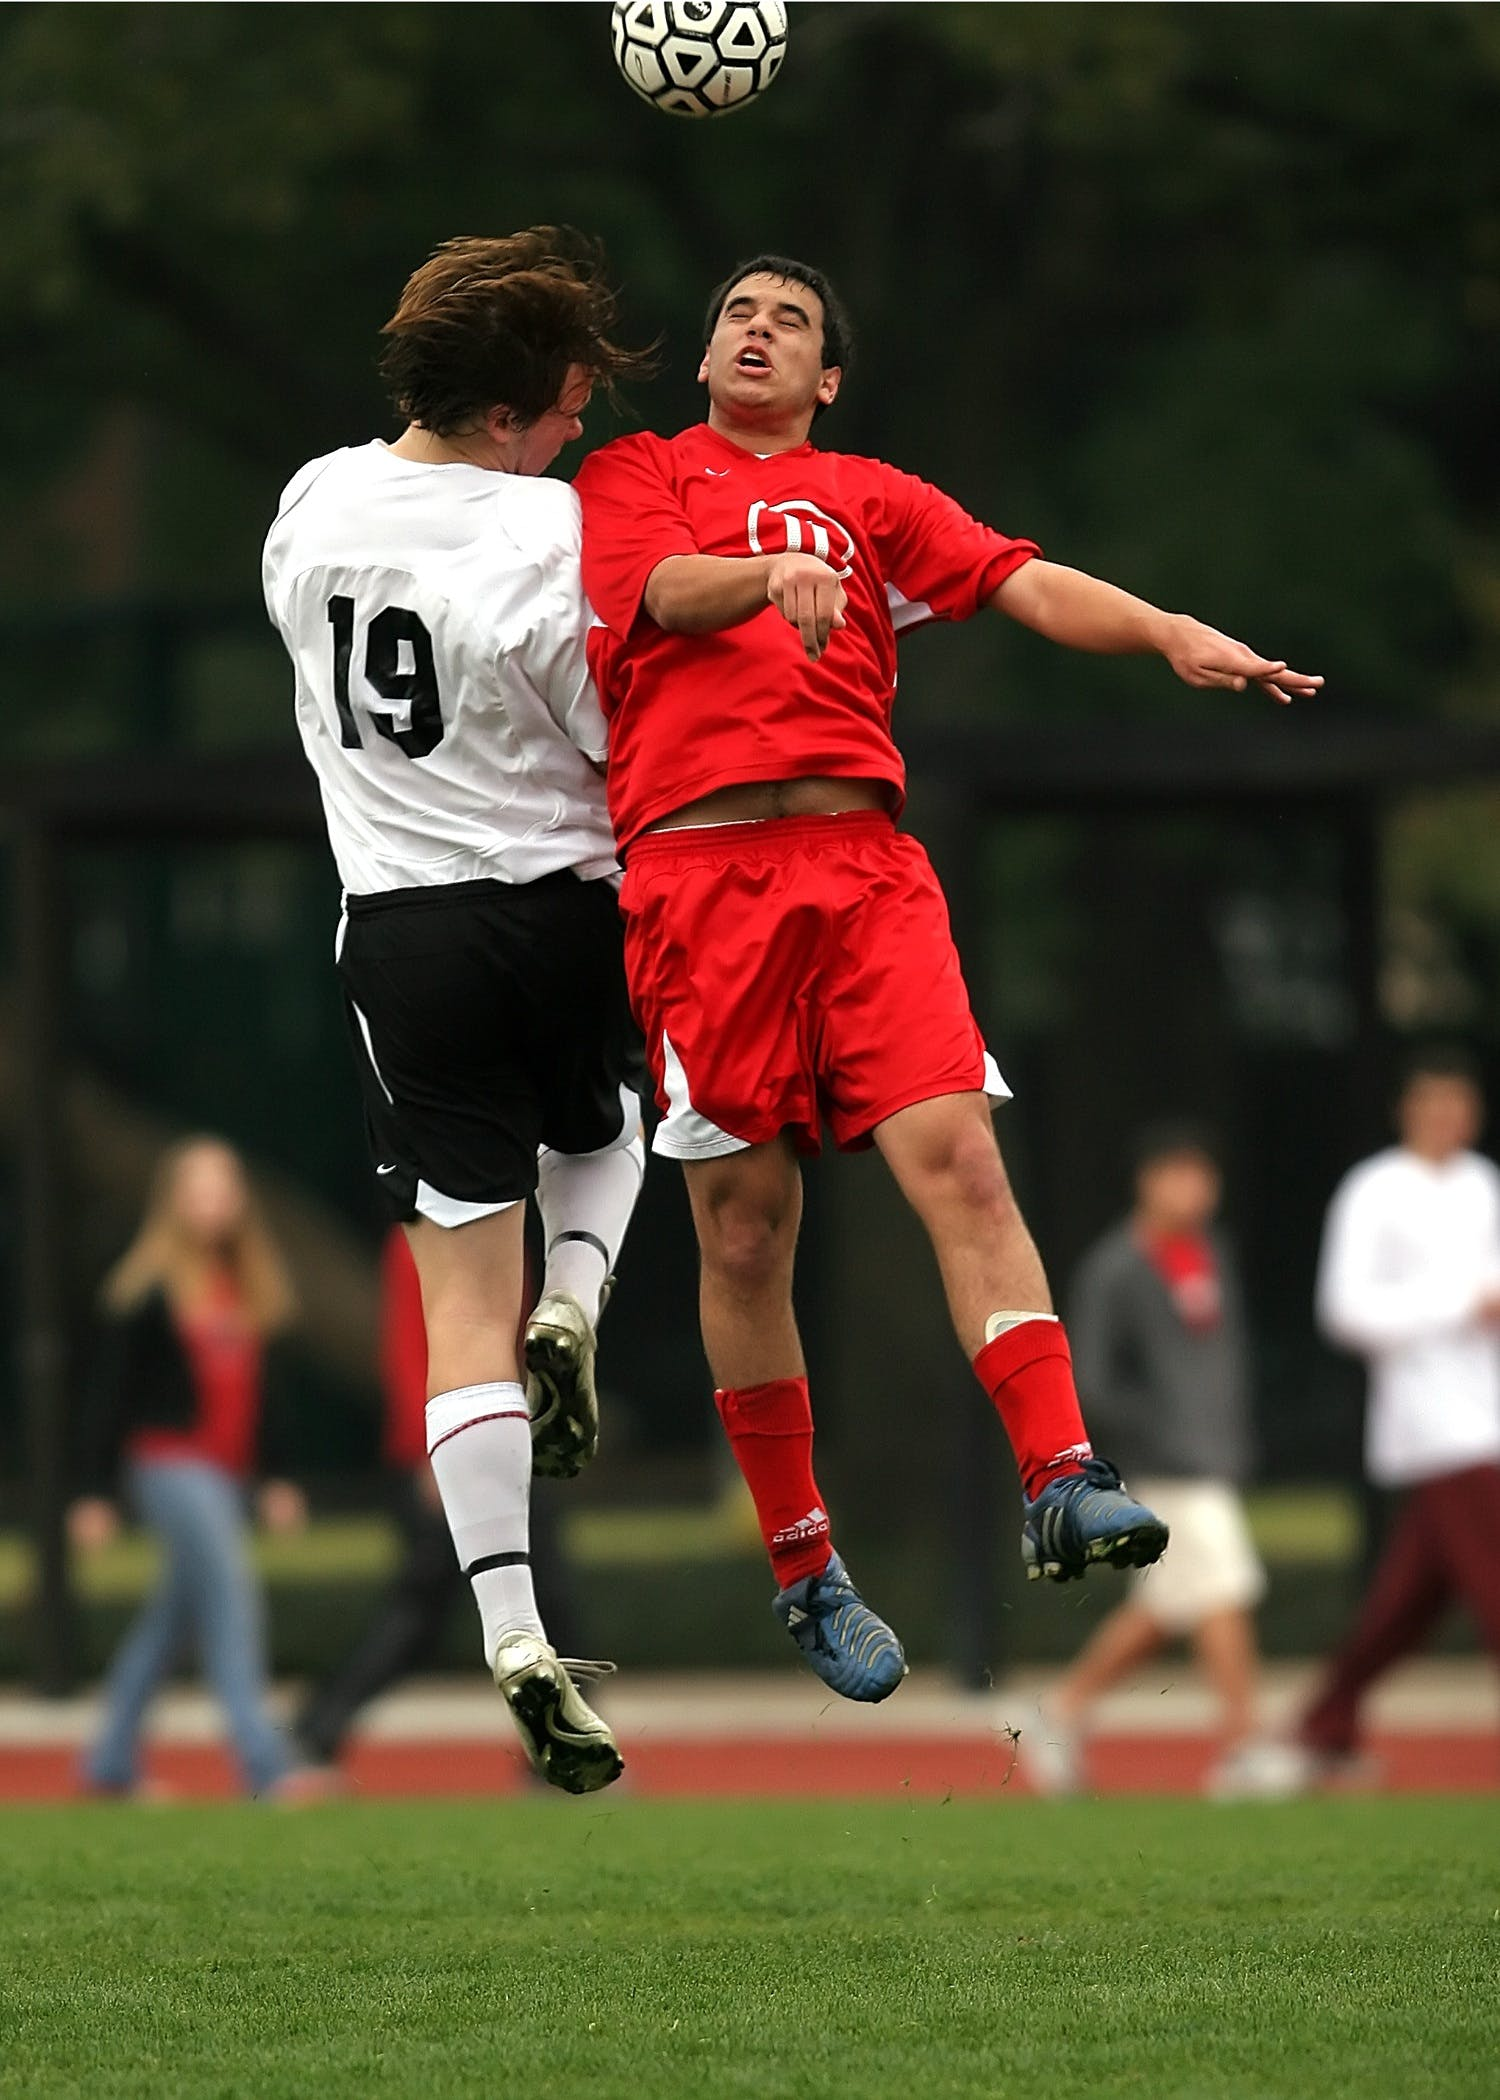 2 Soccer Player Had a Collision